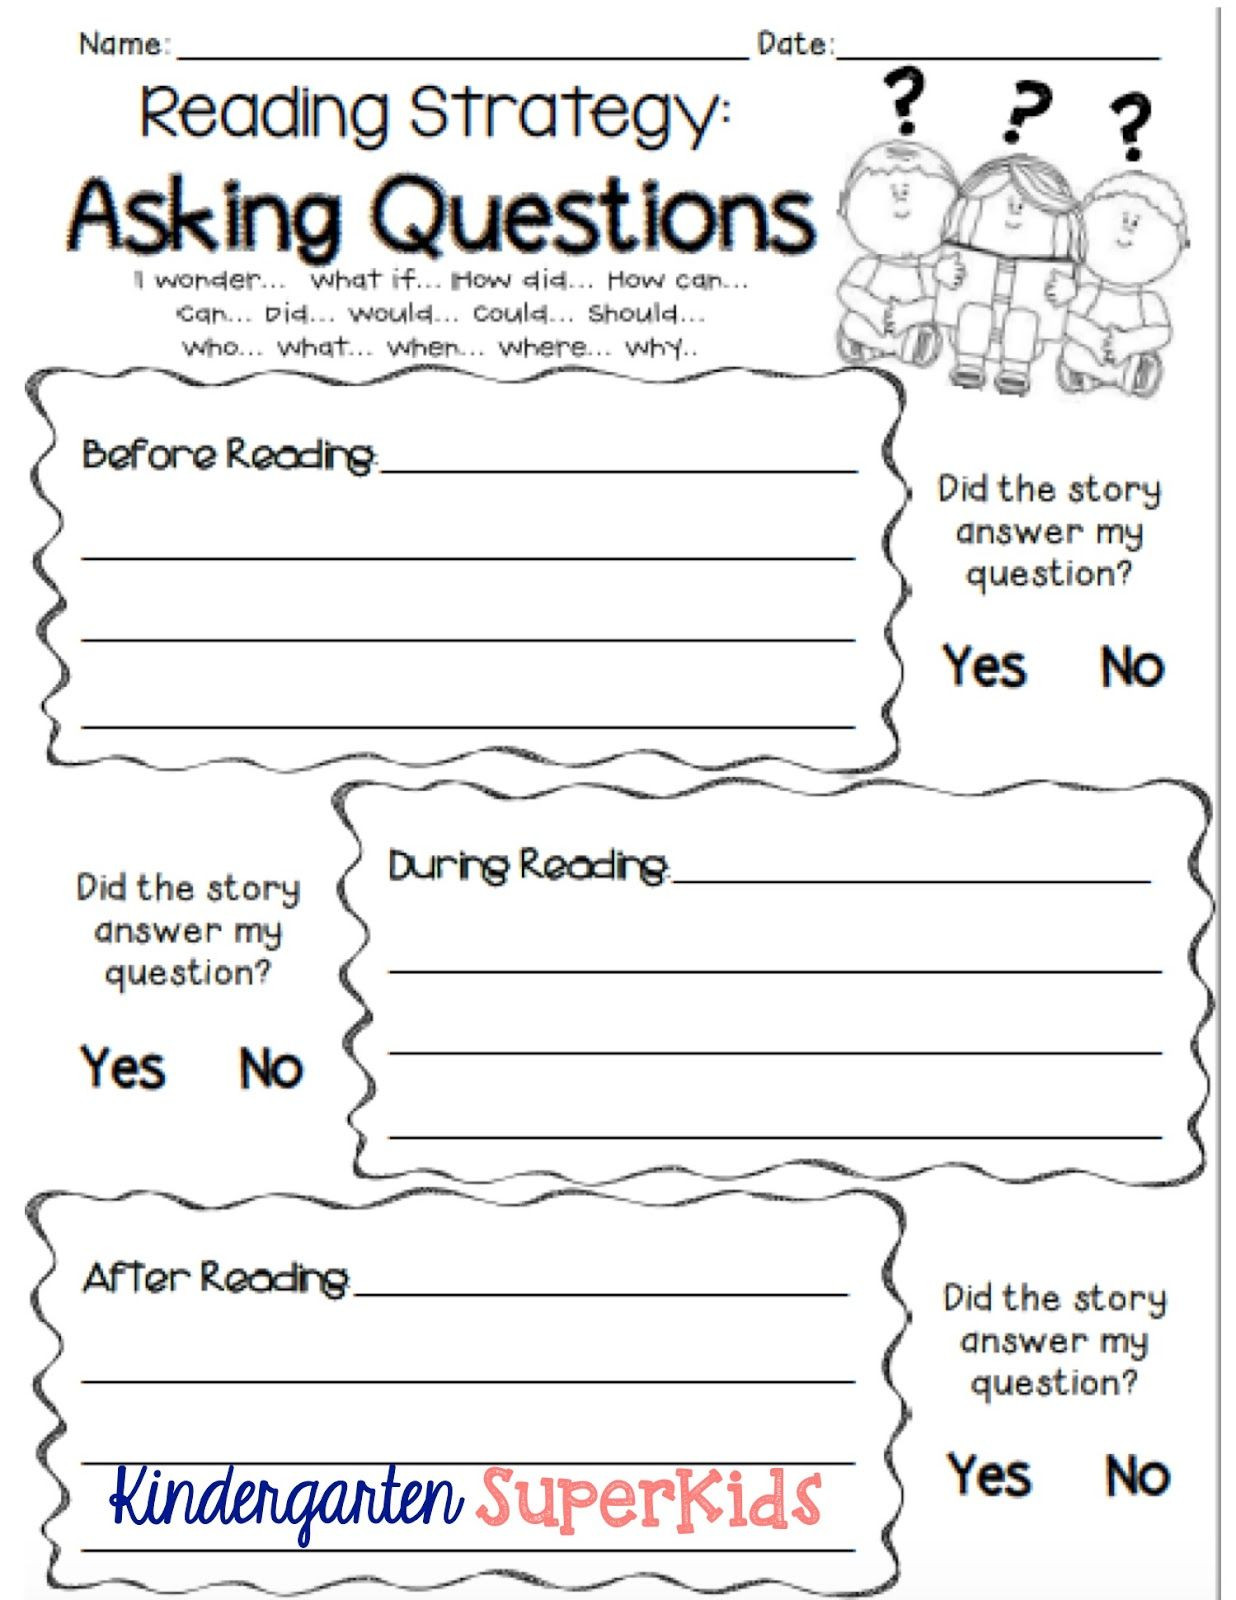 Timeline Worksheets for 1st Grade asking Questions Reading Strategy Free Student Recording